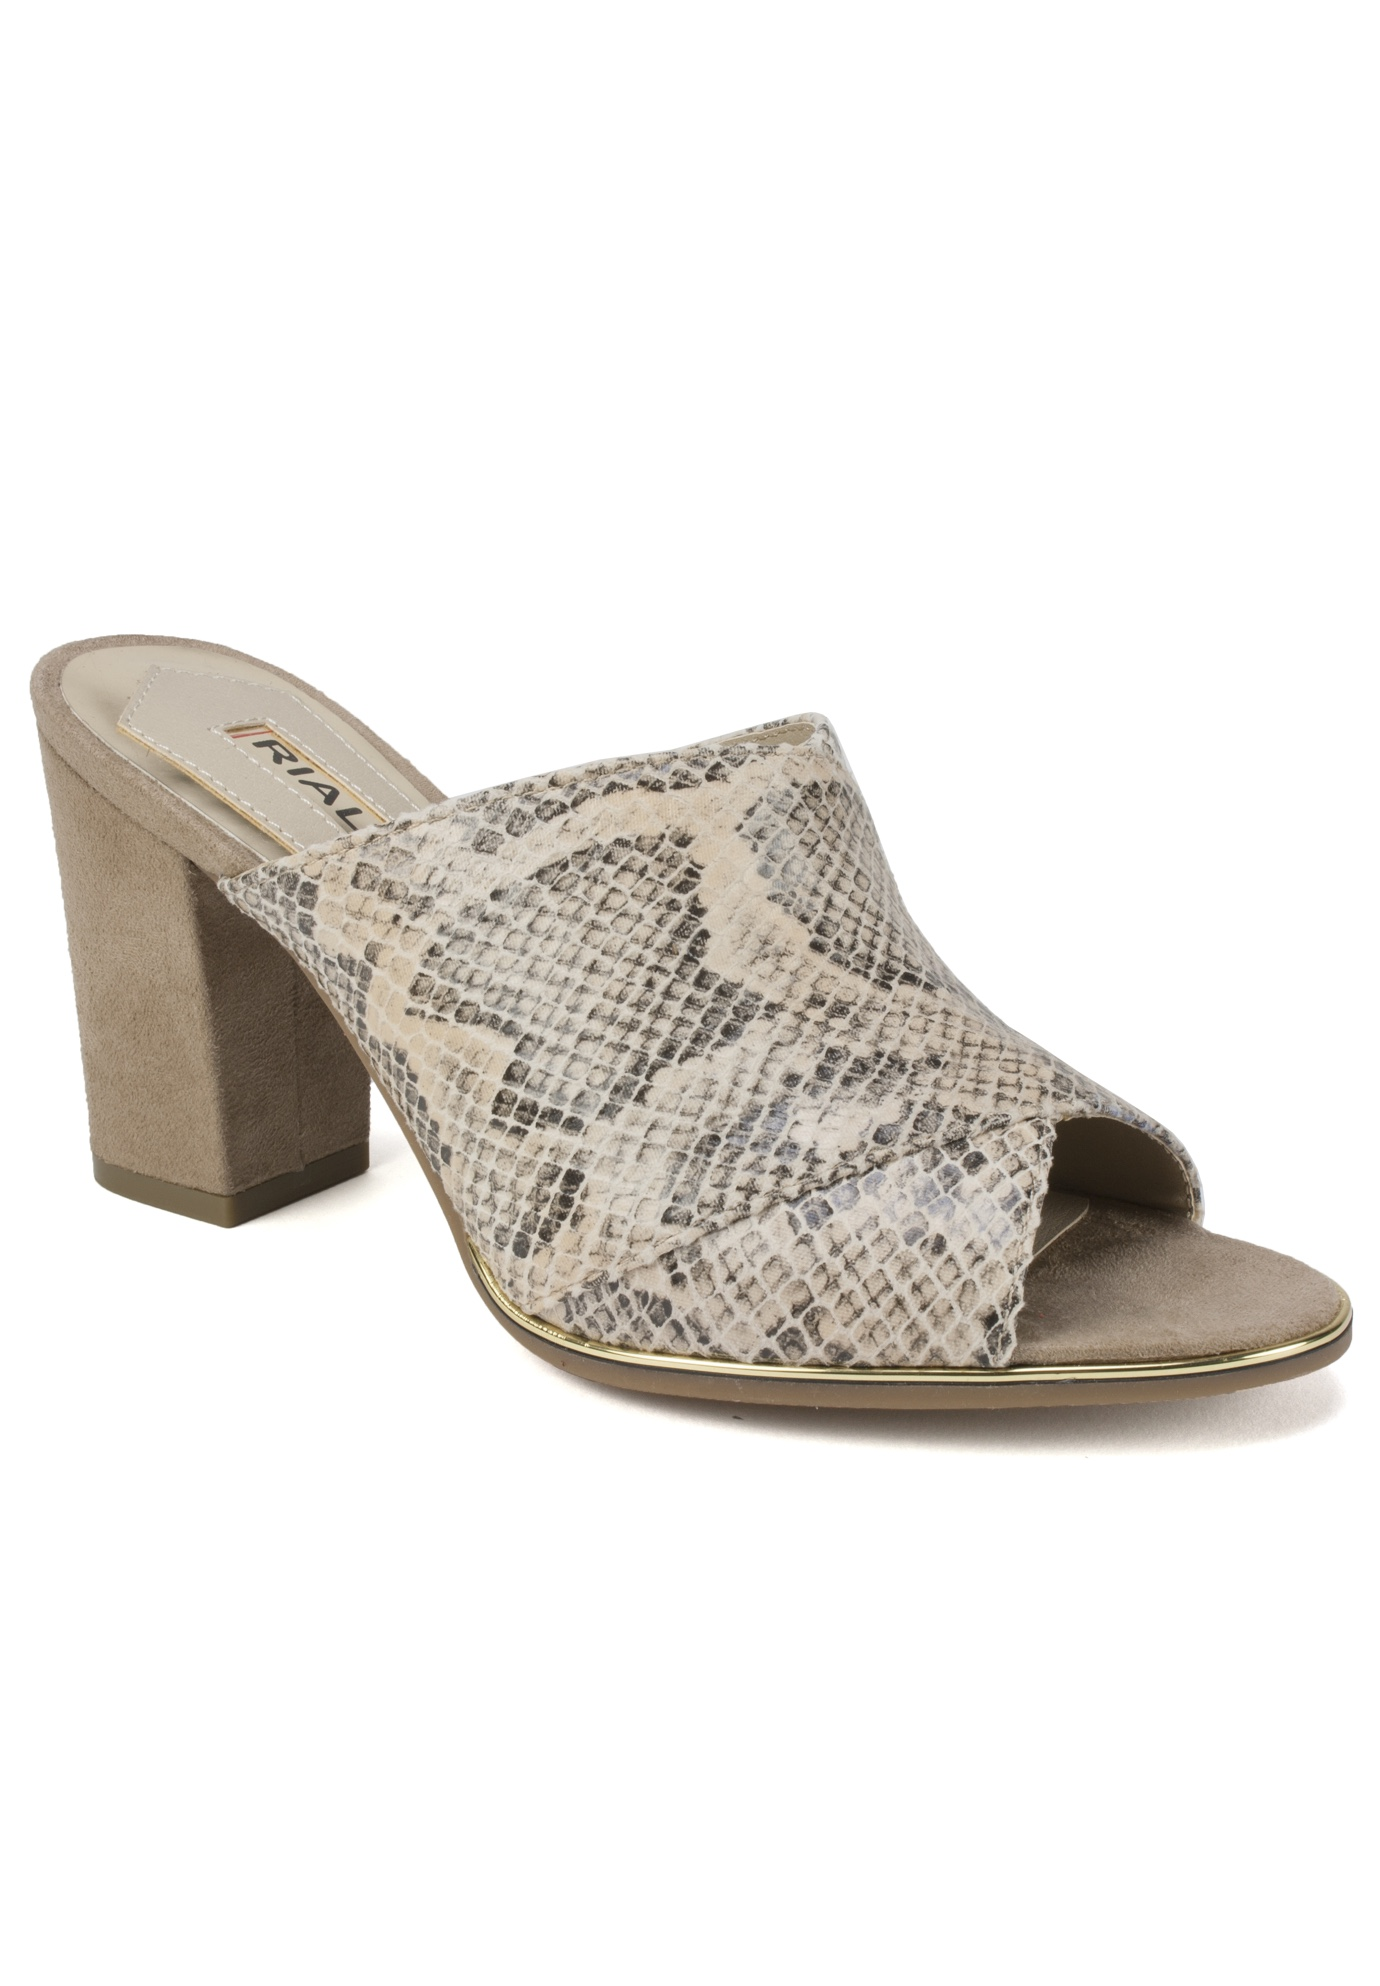 Wendall Sandal by Rialto,